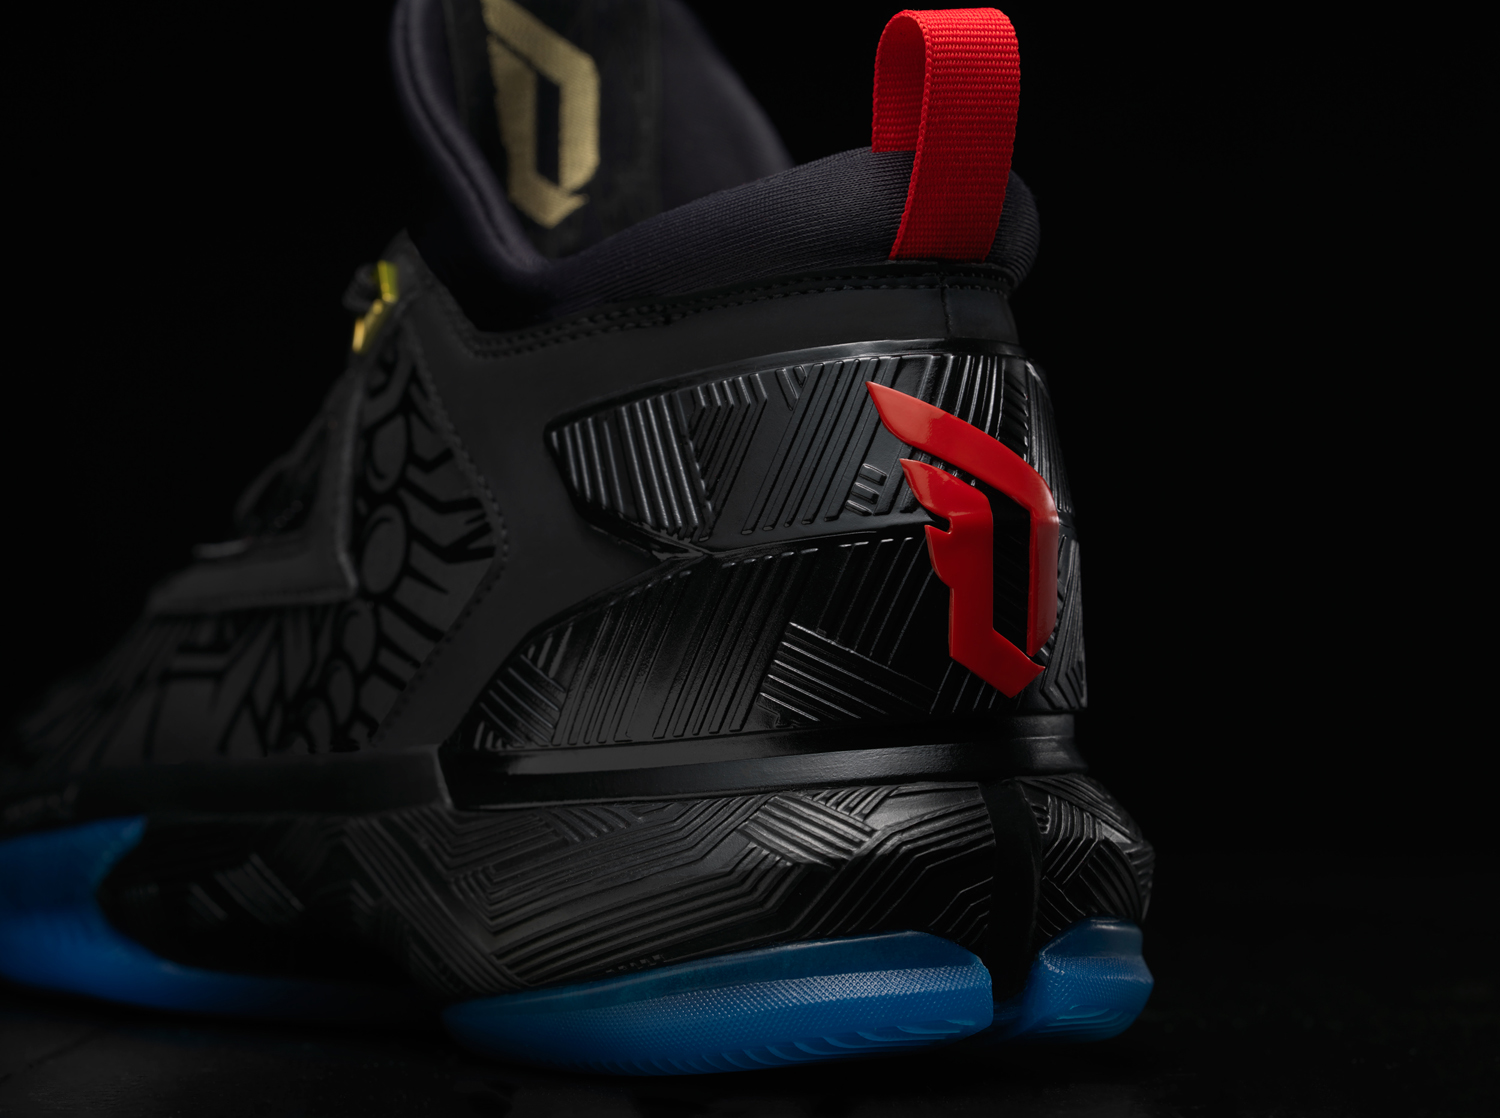 Adidas Basketball Rings in Chinese New Year via 'Fire Monkey